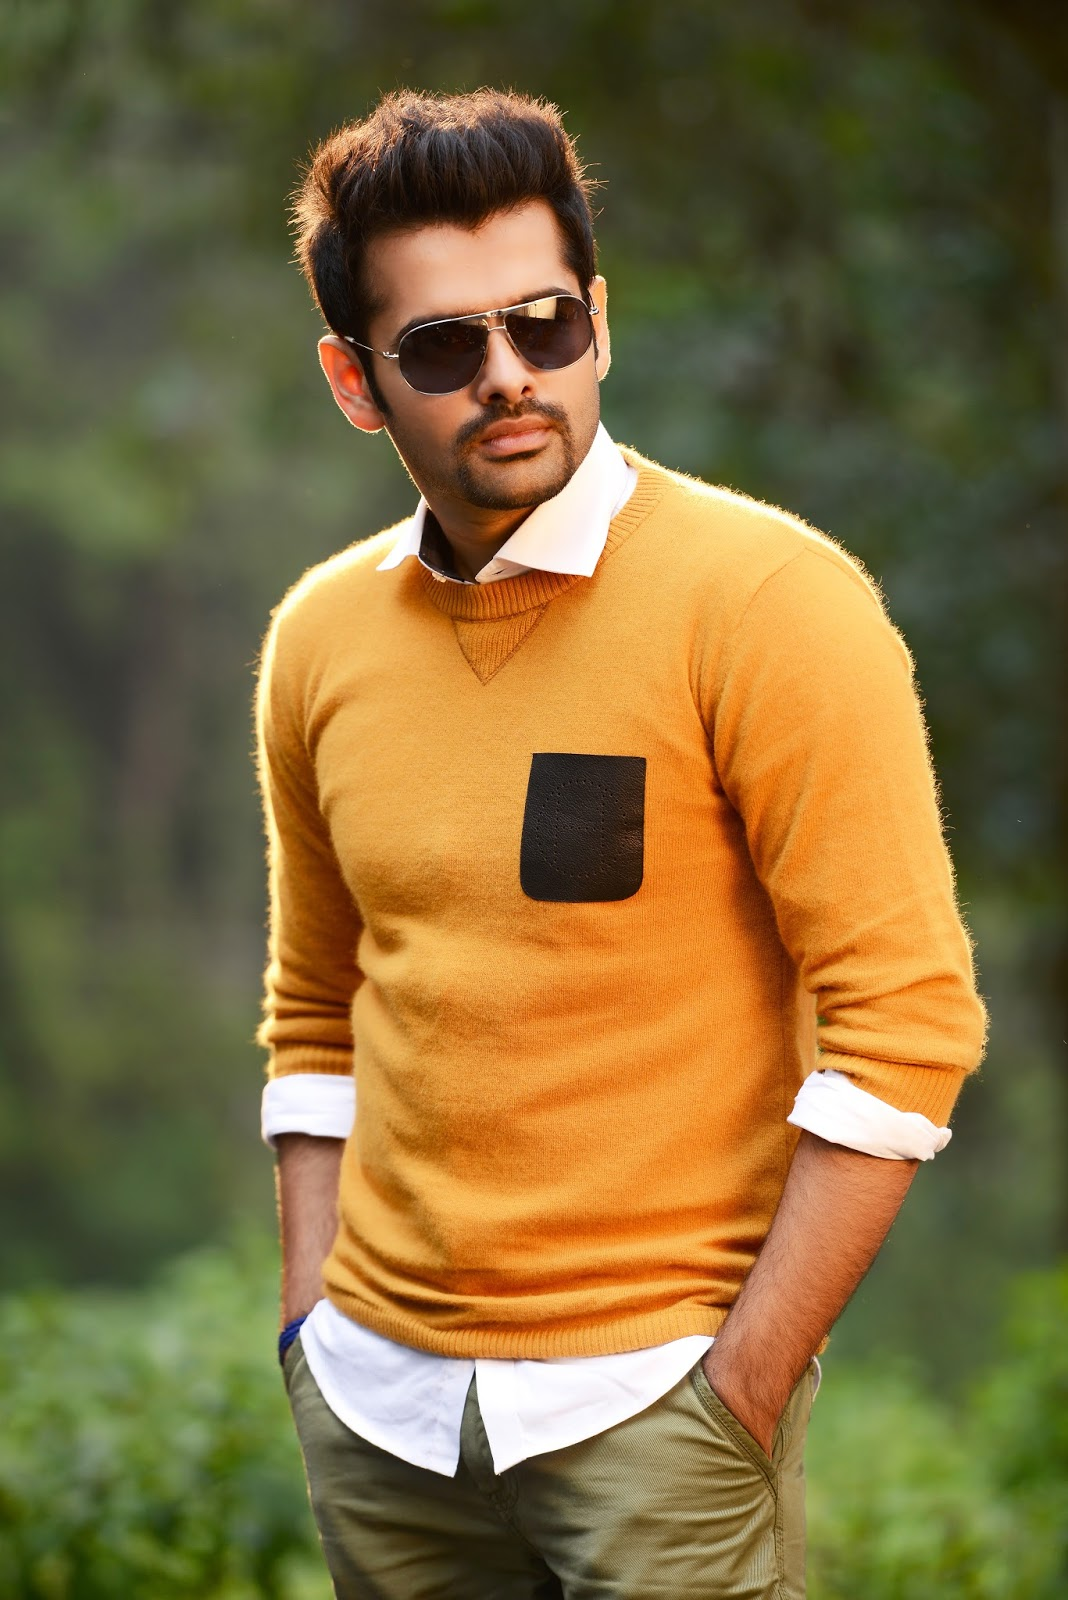 Shivam Movie Photo Stills | Ram | Rashi Khanna